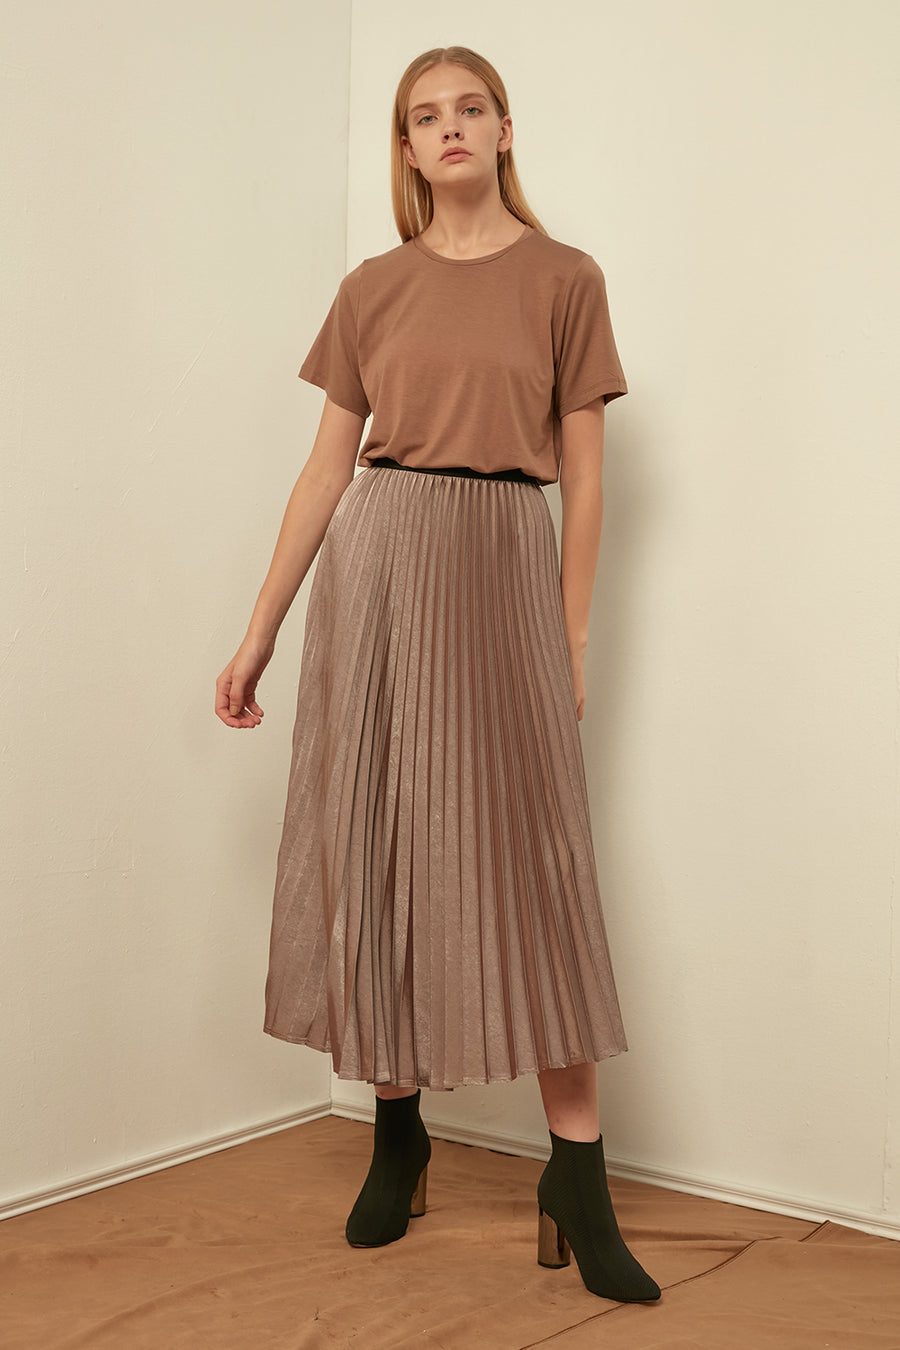 Soft pleated skirt - Zelle Studio